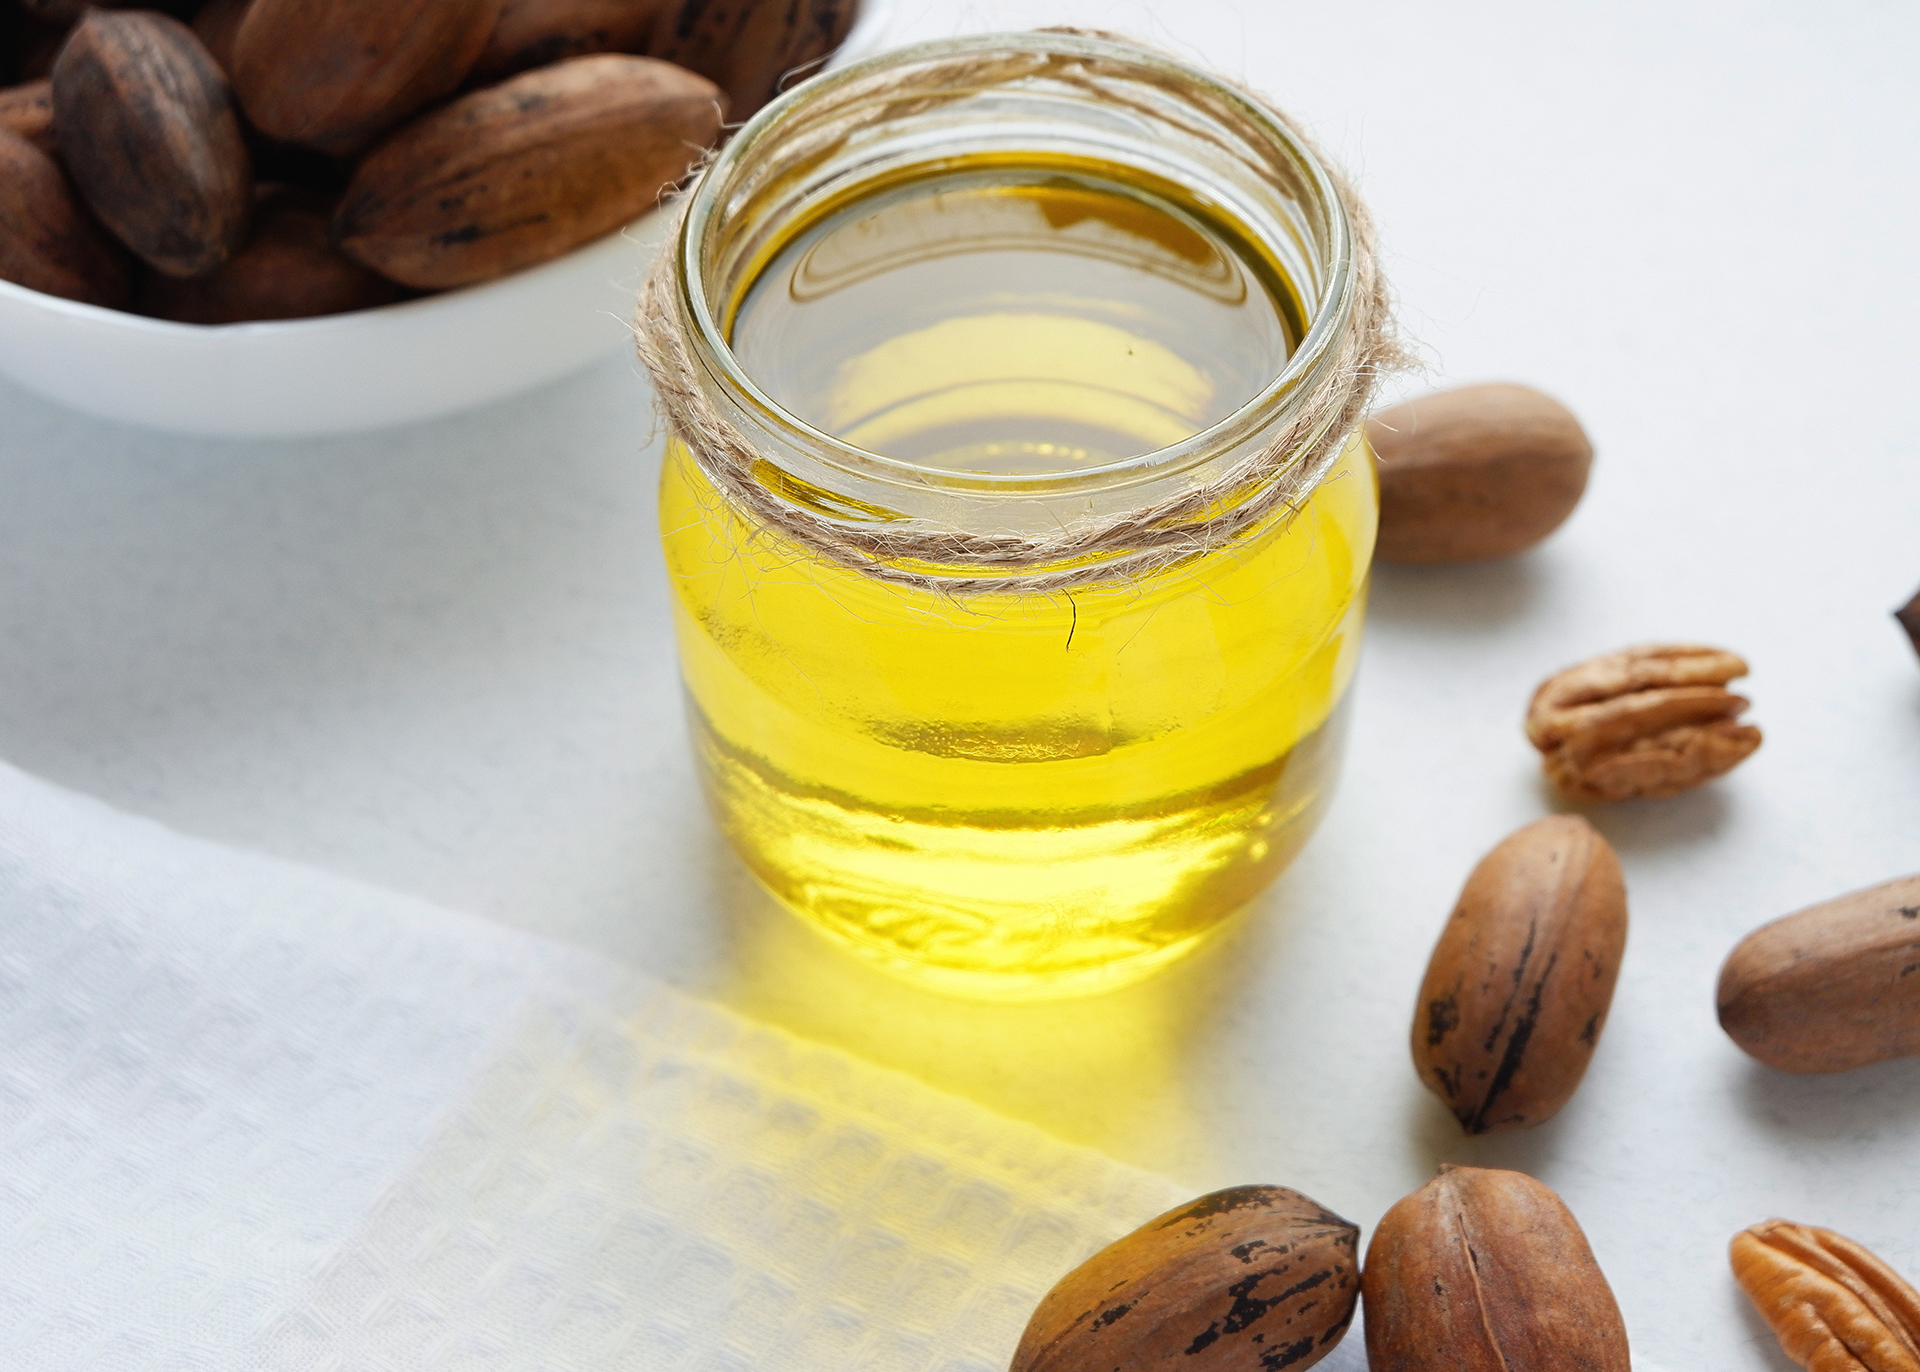 Pecan-Nut-Oil_Henry-Lamotte-Oils